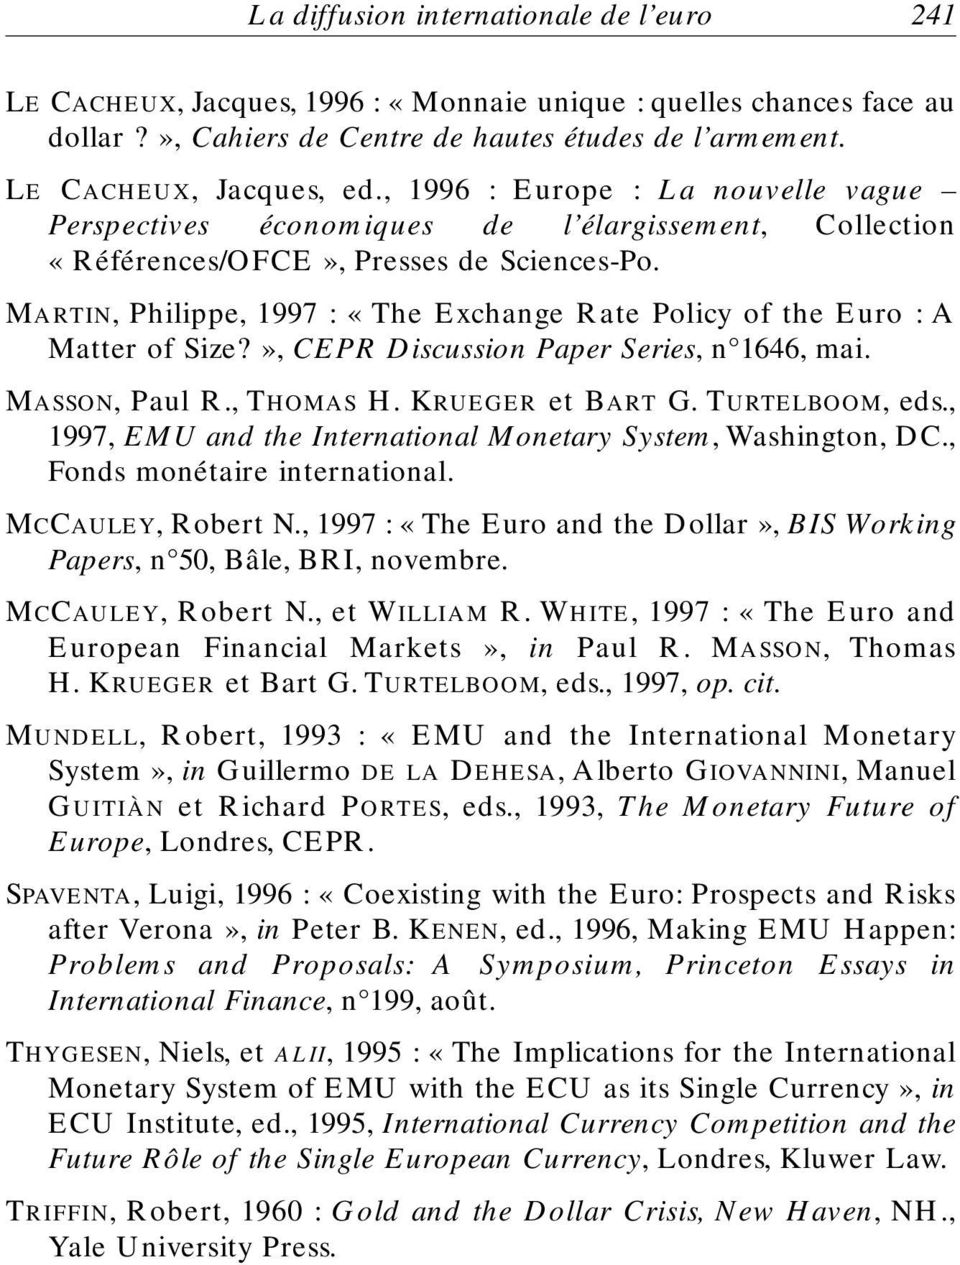 MARTIN, Philippe, 1997 : «The Exchange Rate Policy of the Euro : A Matter of Size?», CEPR Discussion Paper Series, n 1646, mai. MASSON, Paul R., THOMAS H. KRUEGER et BART G. TURTELBOOM, eds.